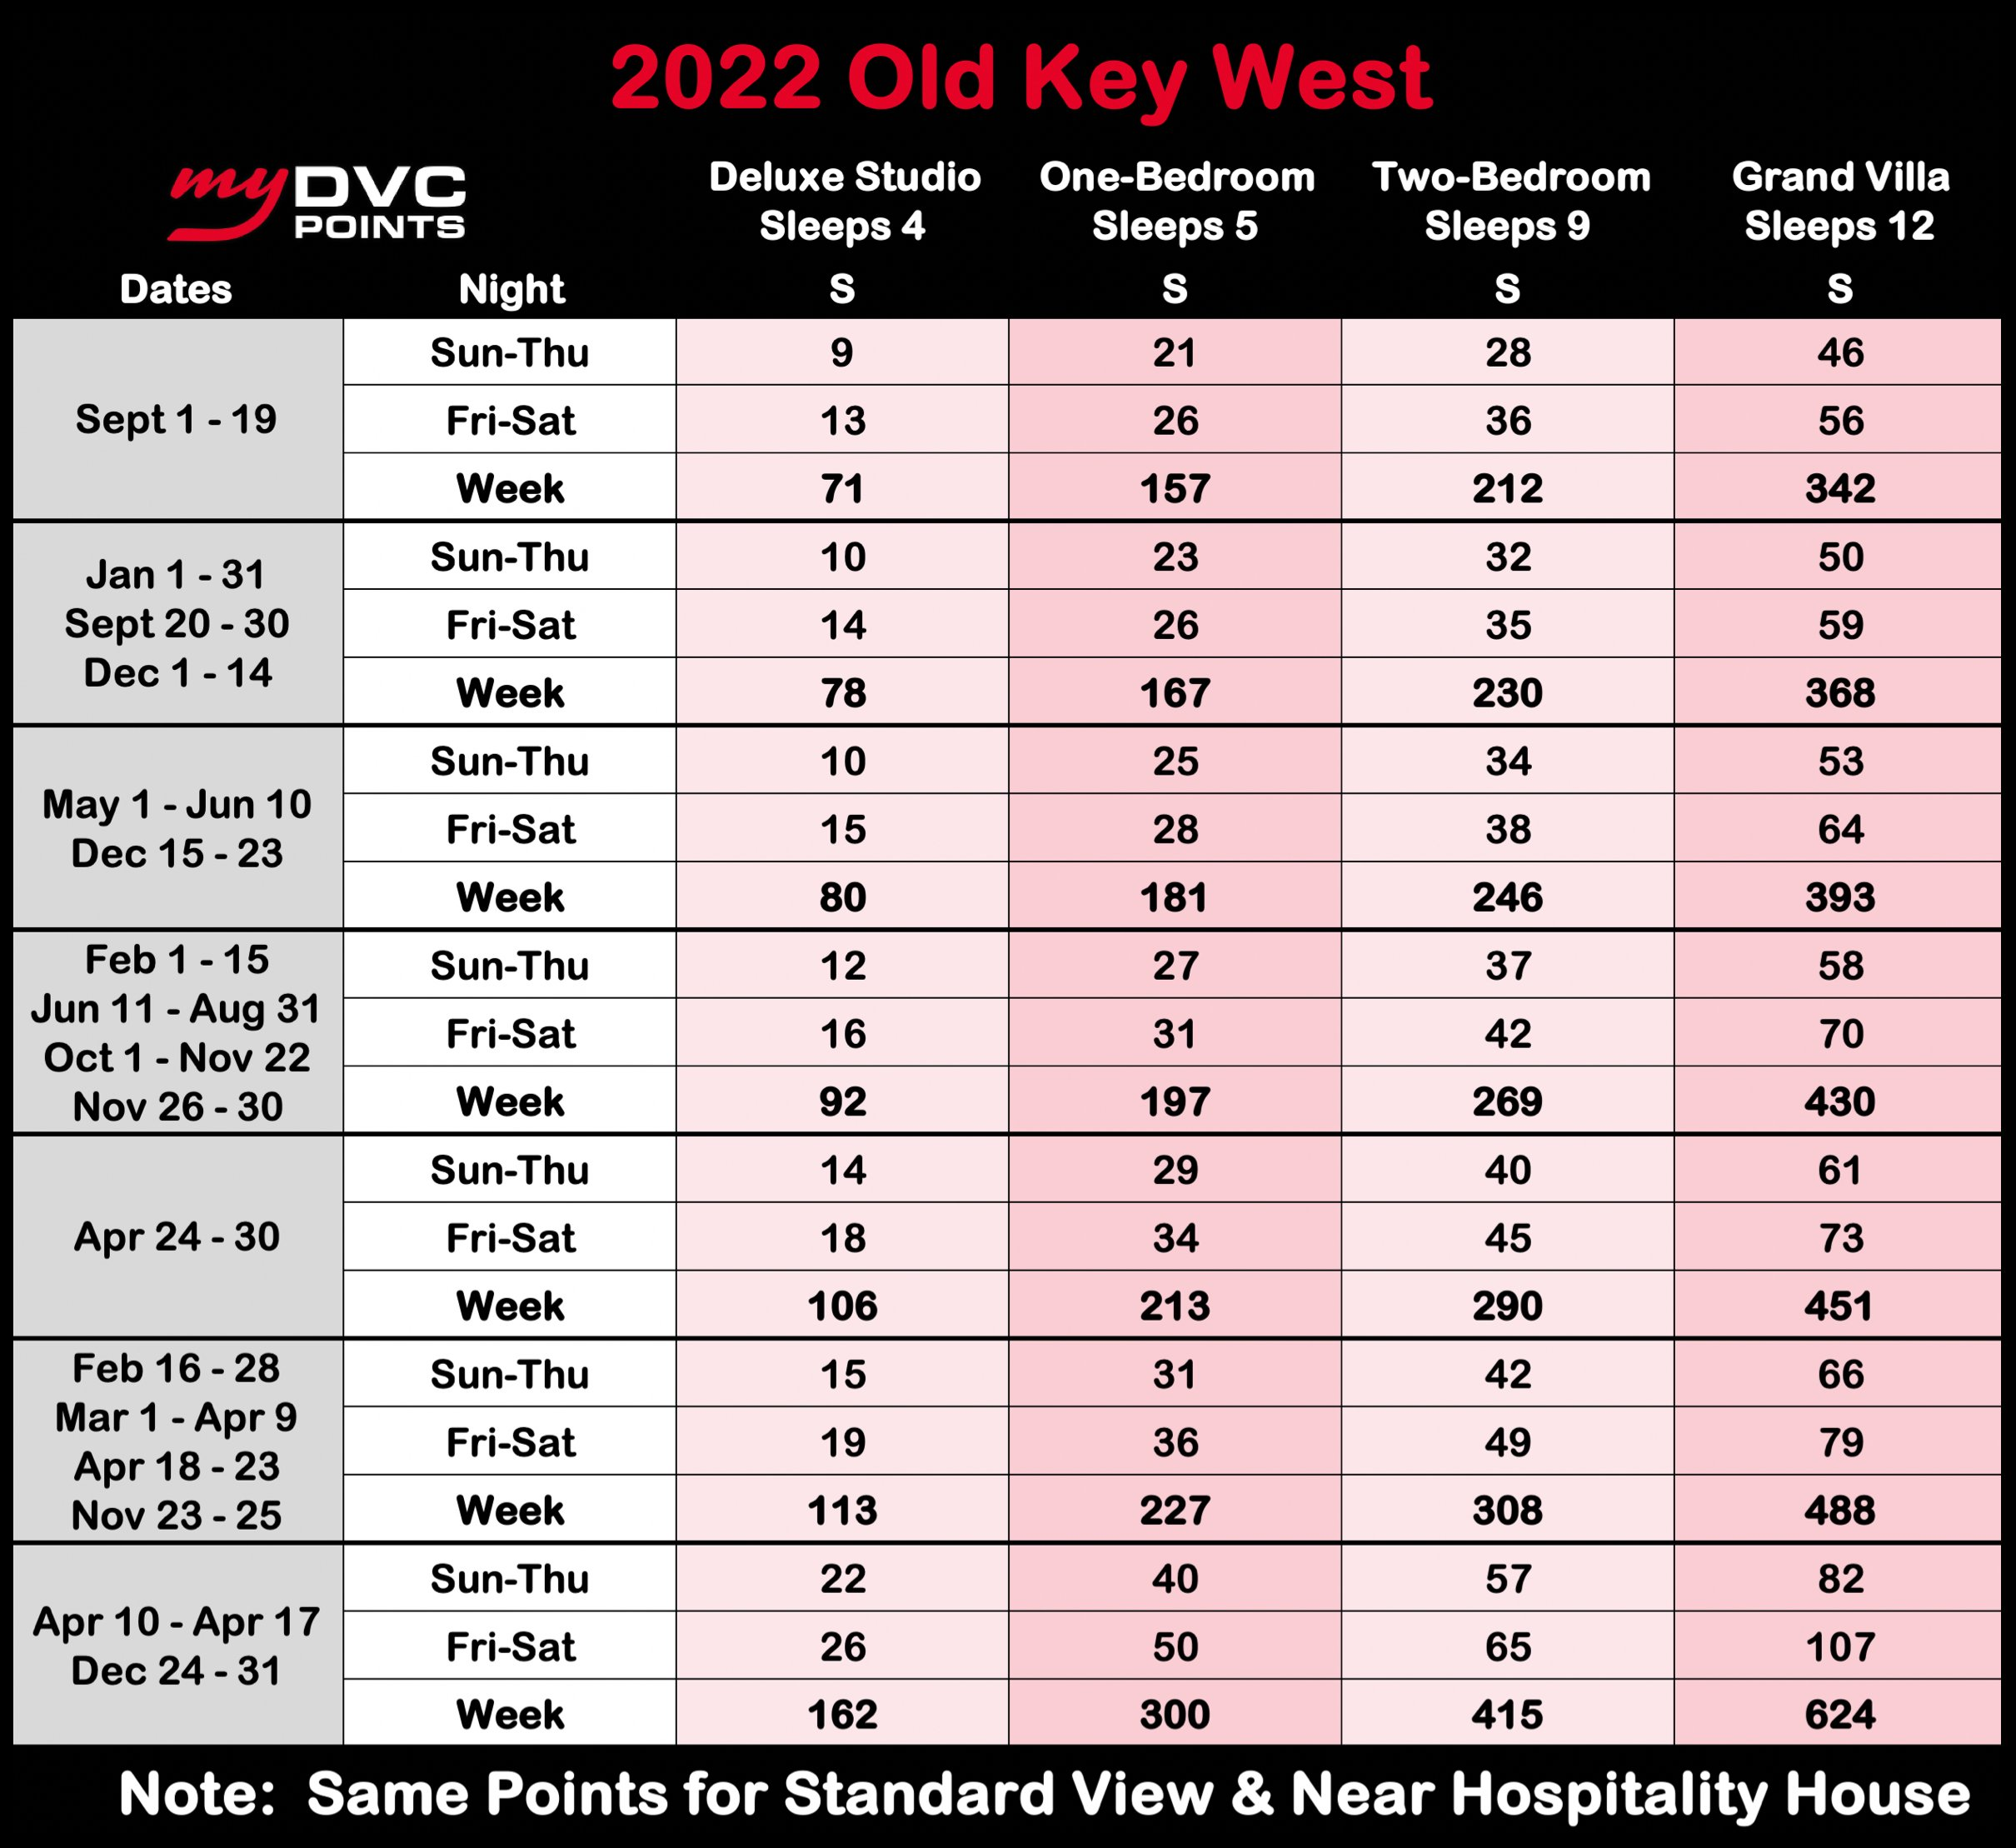 Disney's Old Key West Resort 2022 Point Charts